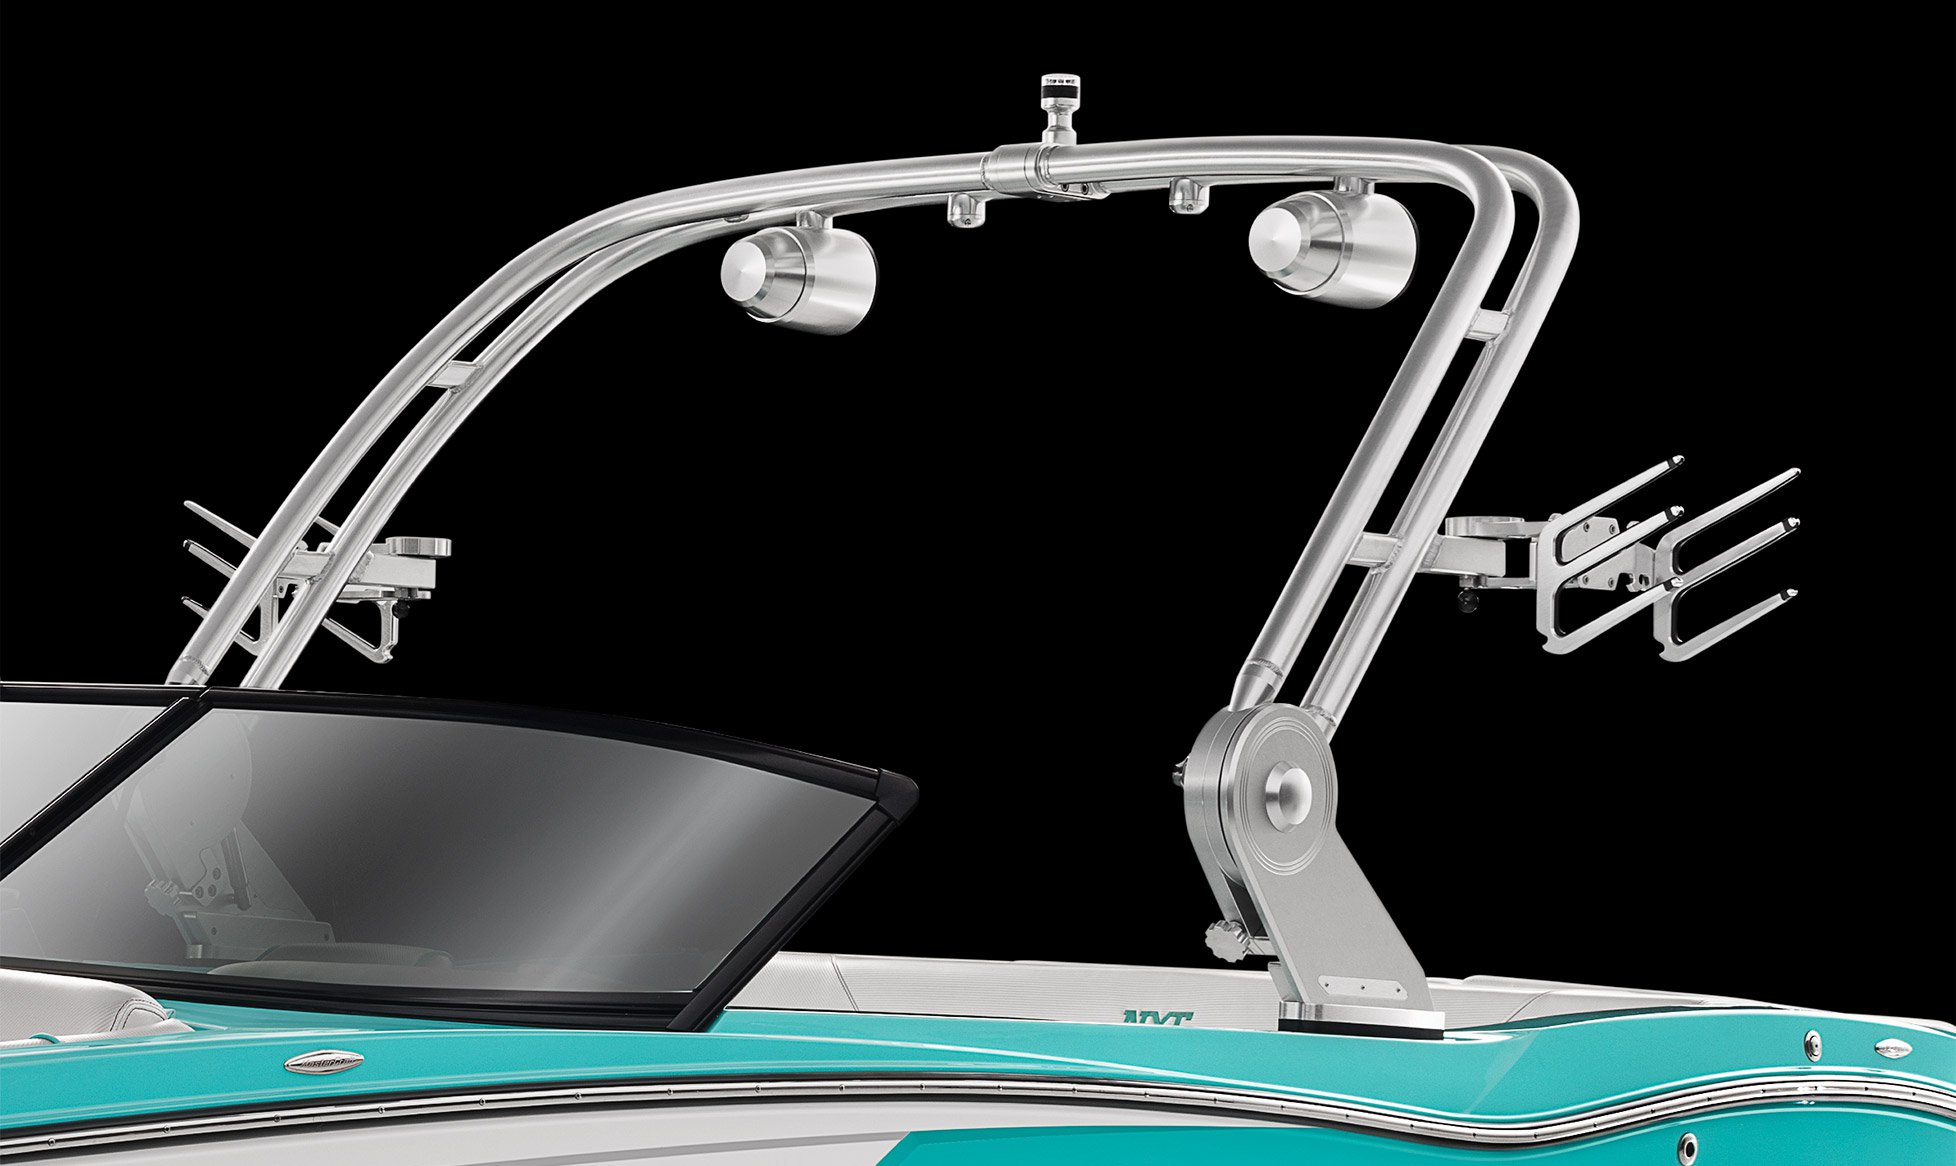 Mastercraft NXT 20 SURF READY - NXT20_05_2018_ZFT2-tower_black